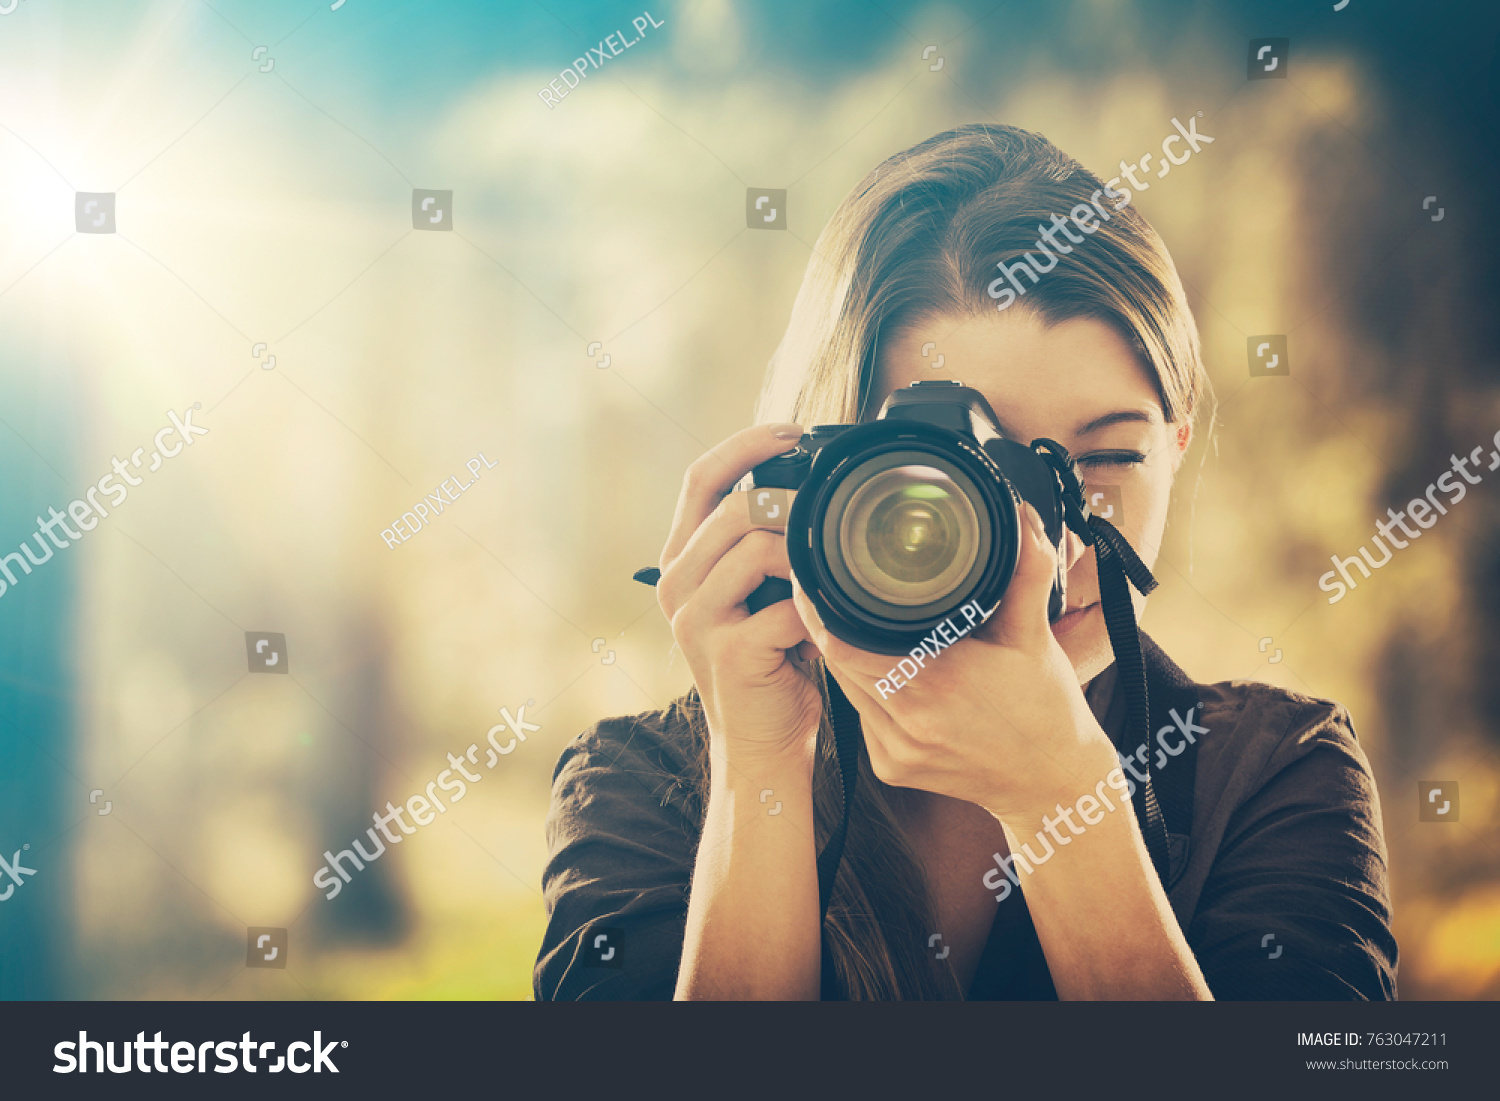 Portrait of a photographer covering her face with the camera. #763047211